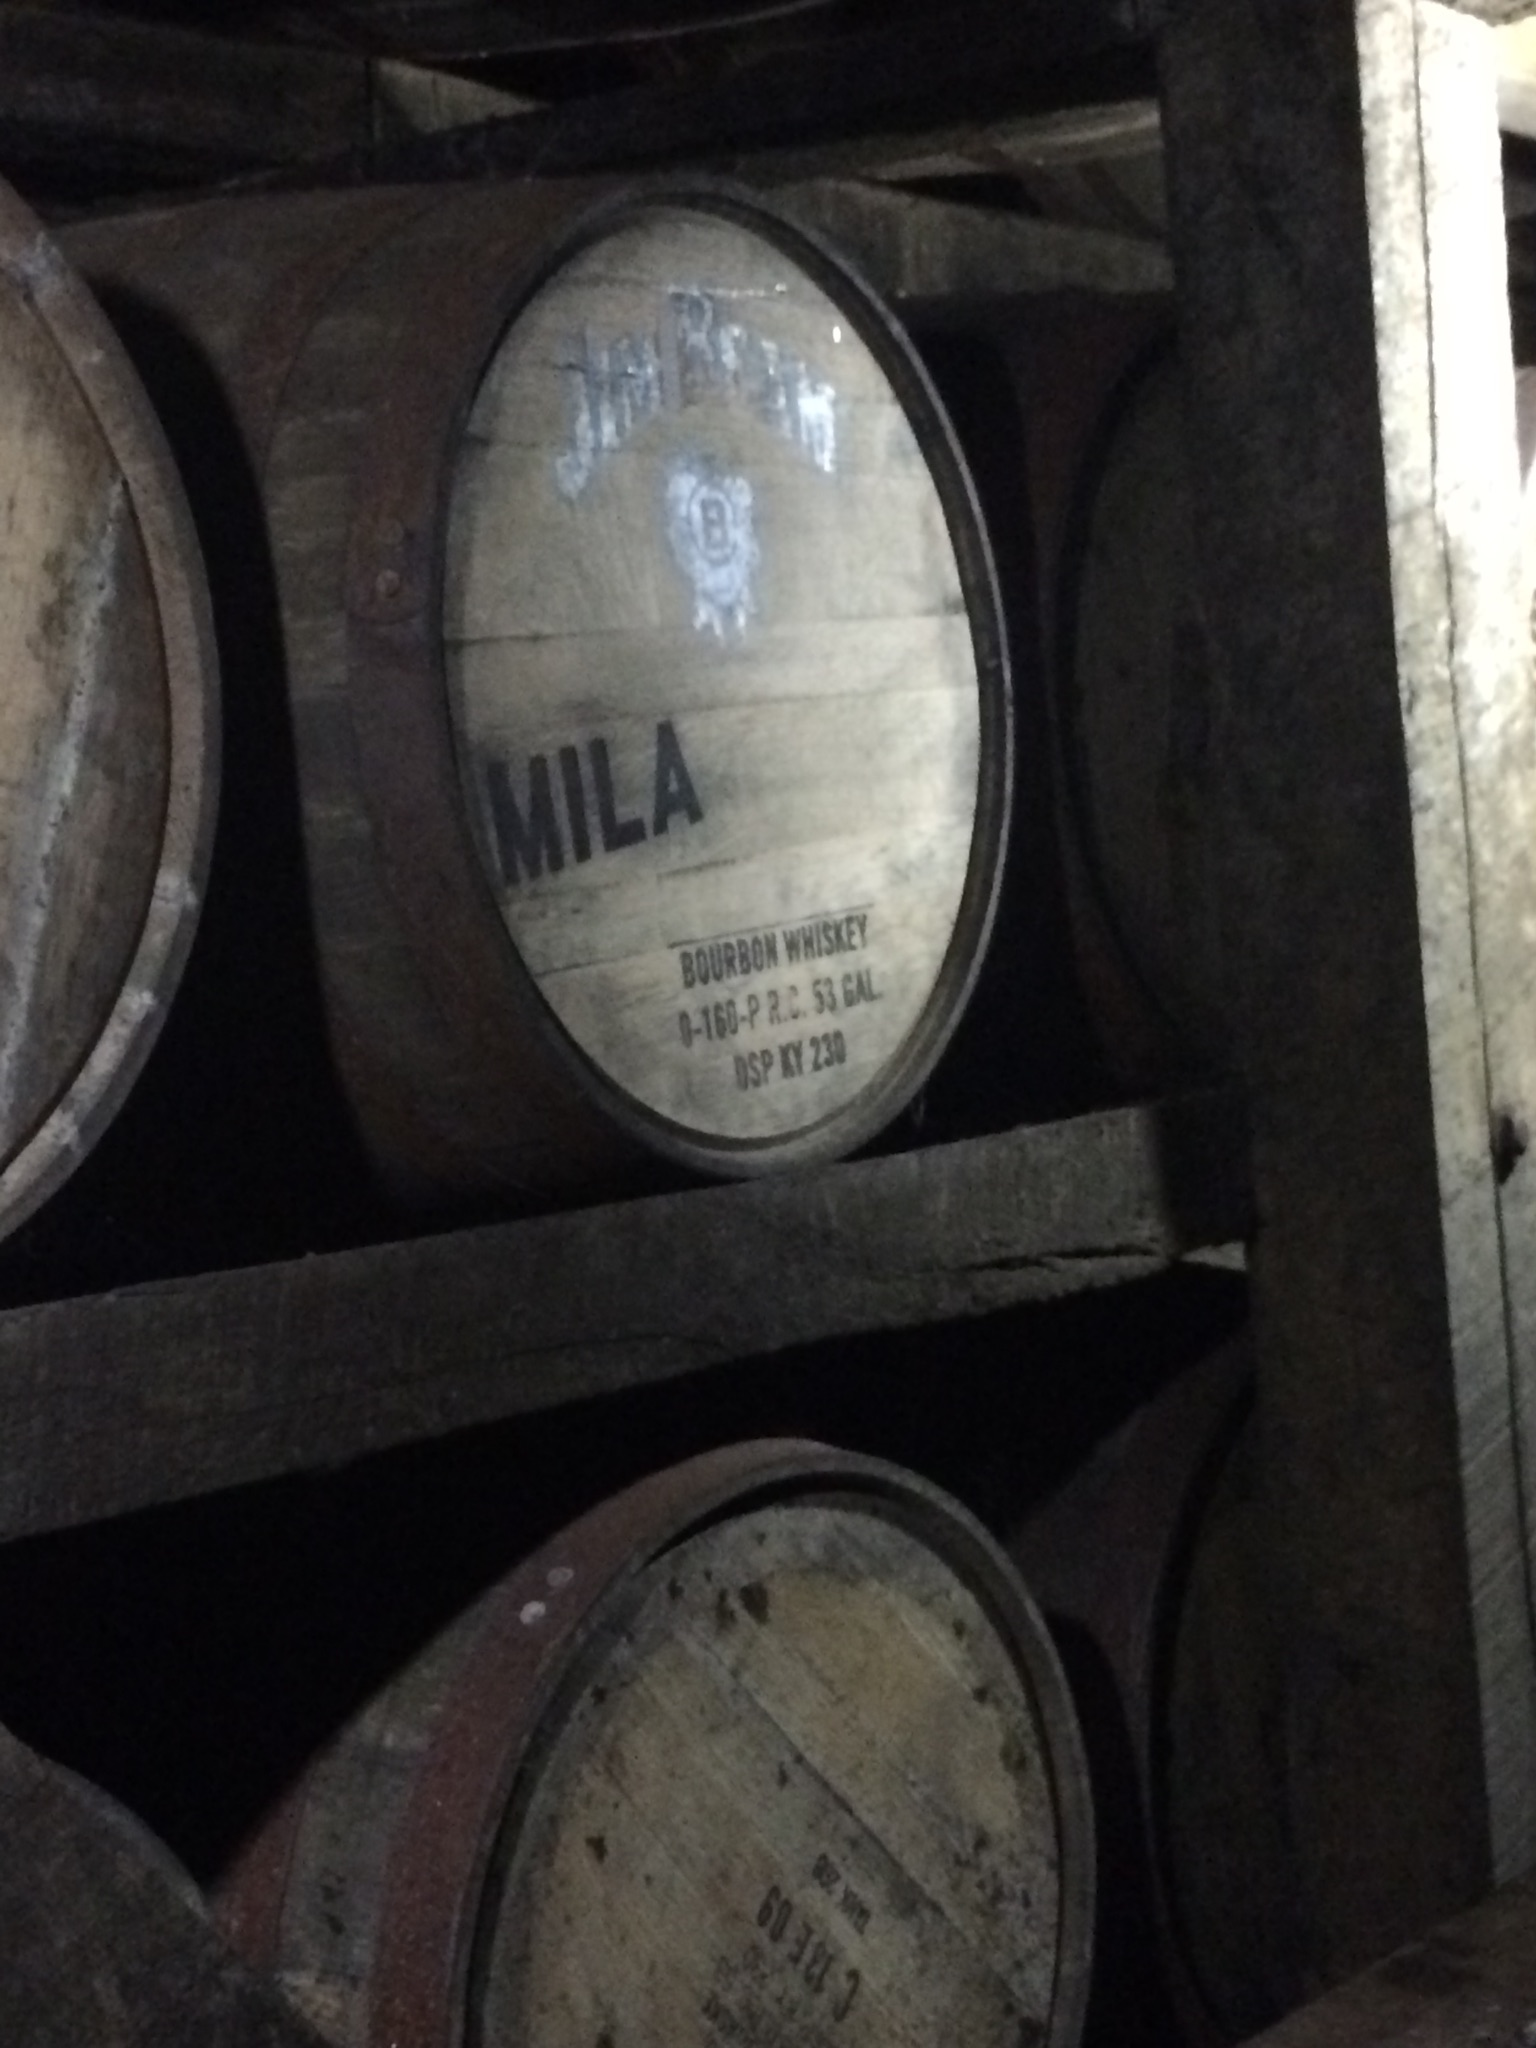 Mila Kunis' barrel at Jim Beam Distillery